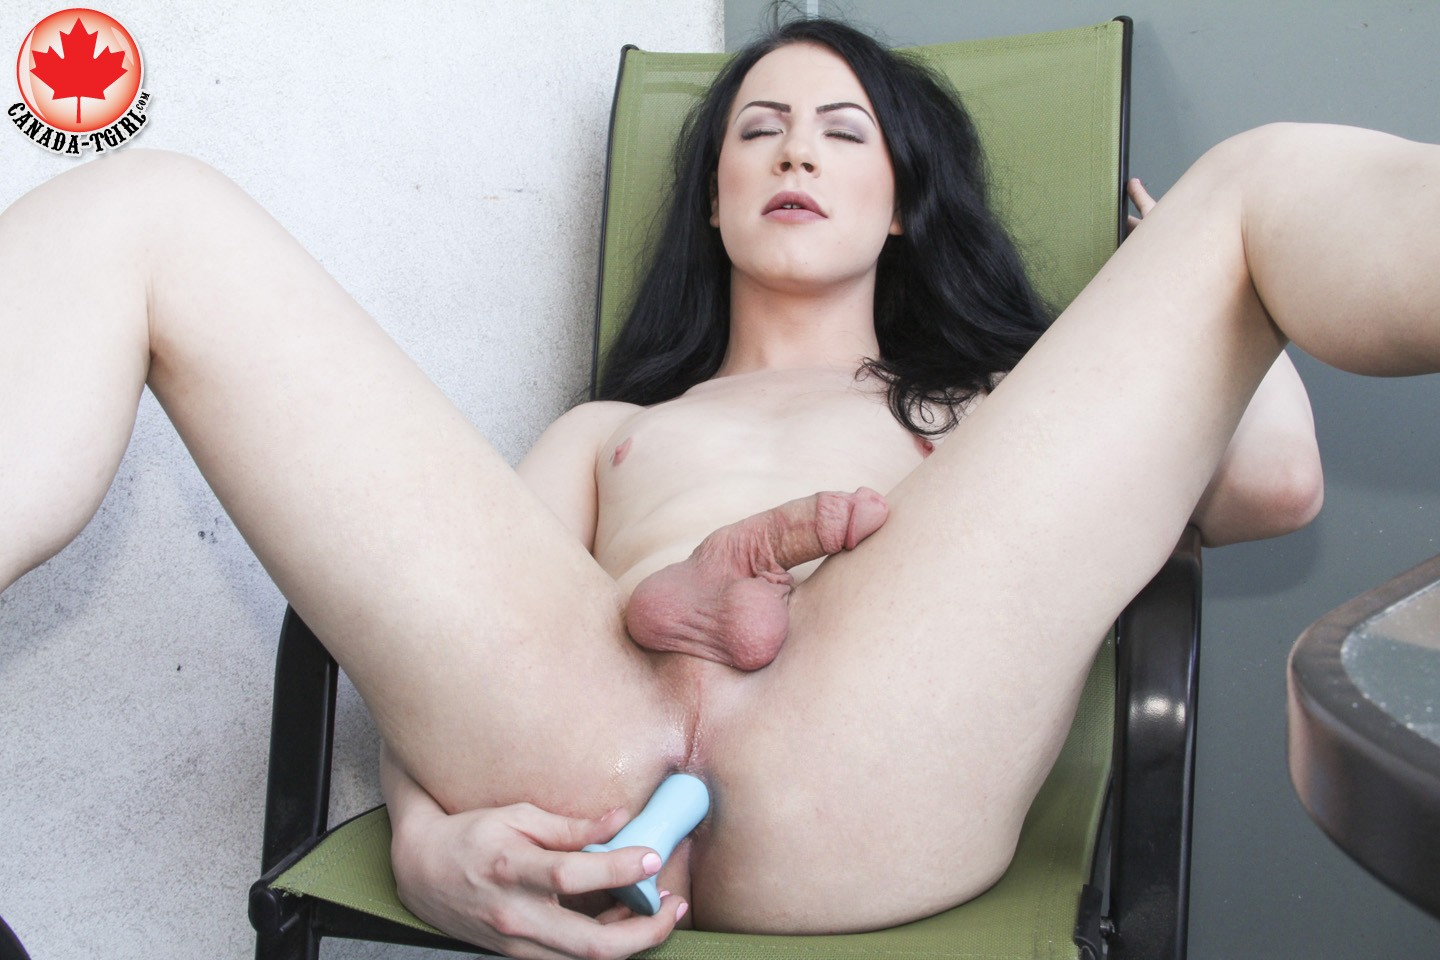 Blair Ryder in Canadatgirl Blair Ryder Plays Outside July 21, 2014  Transsexual | Coco Porn